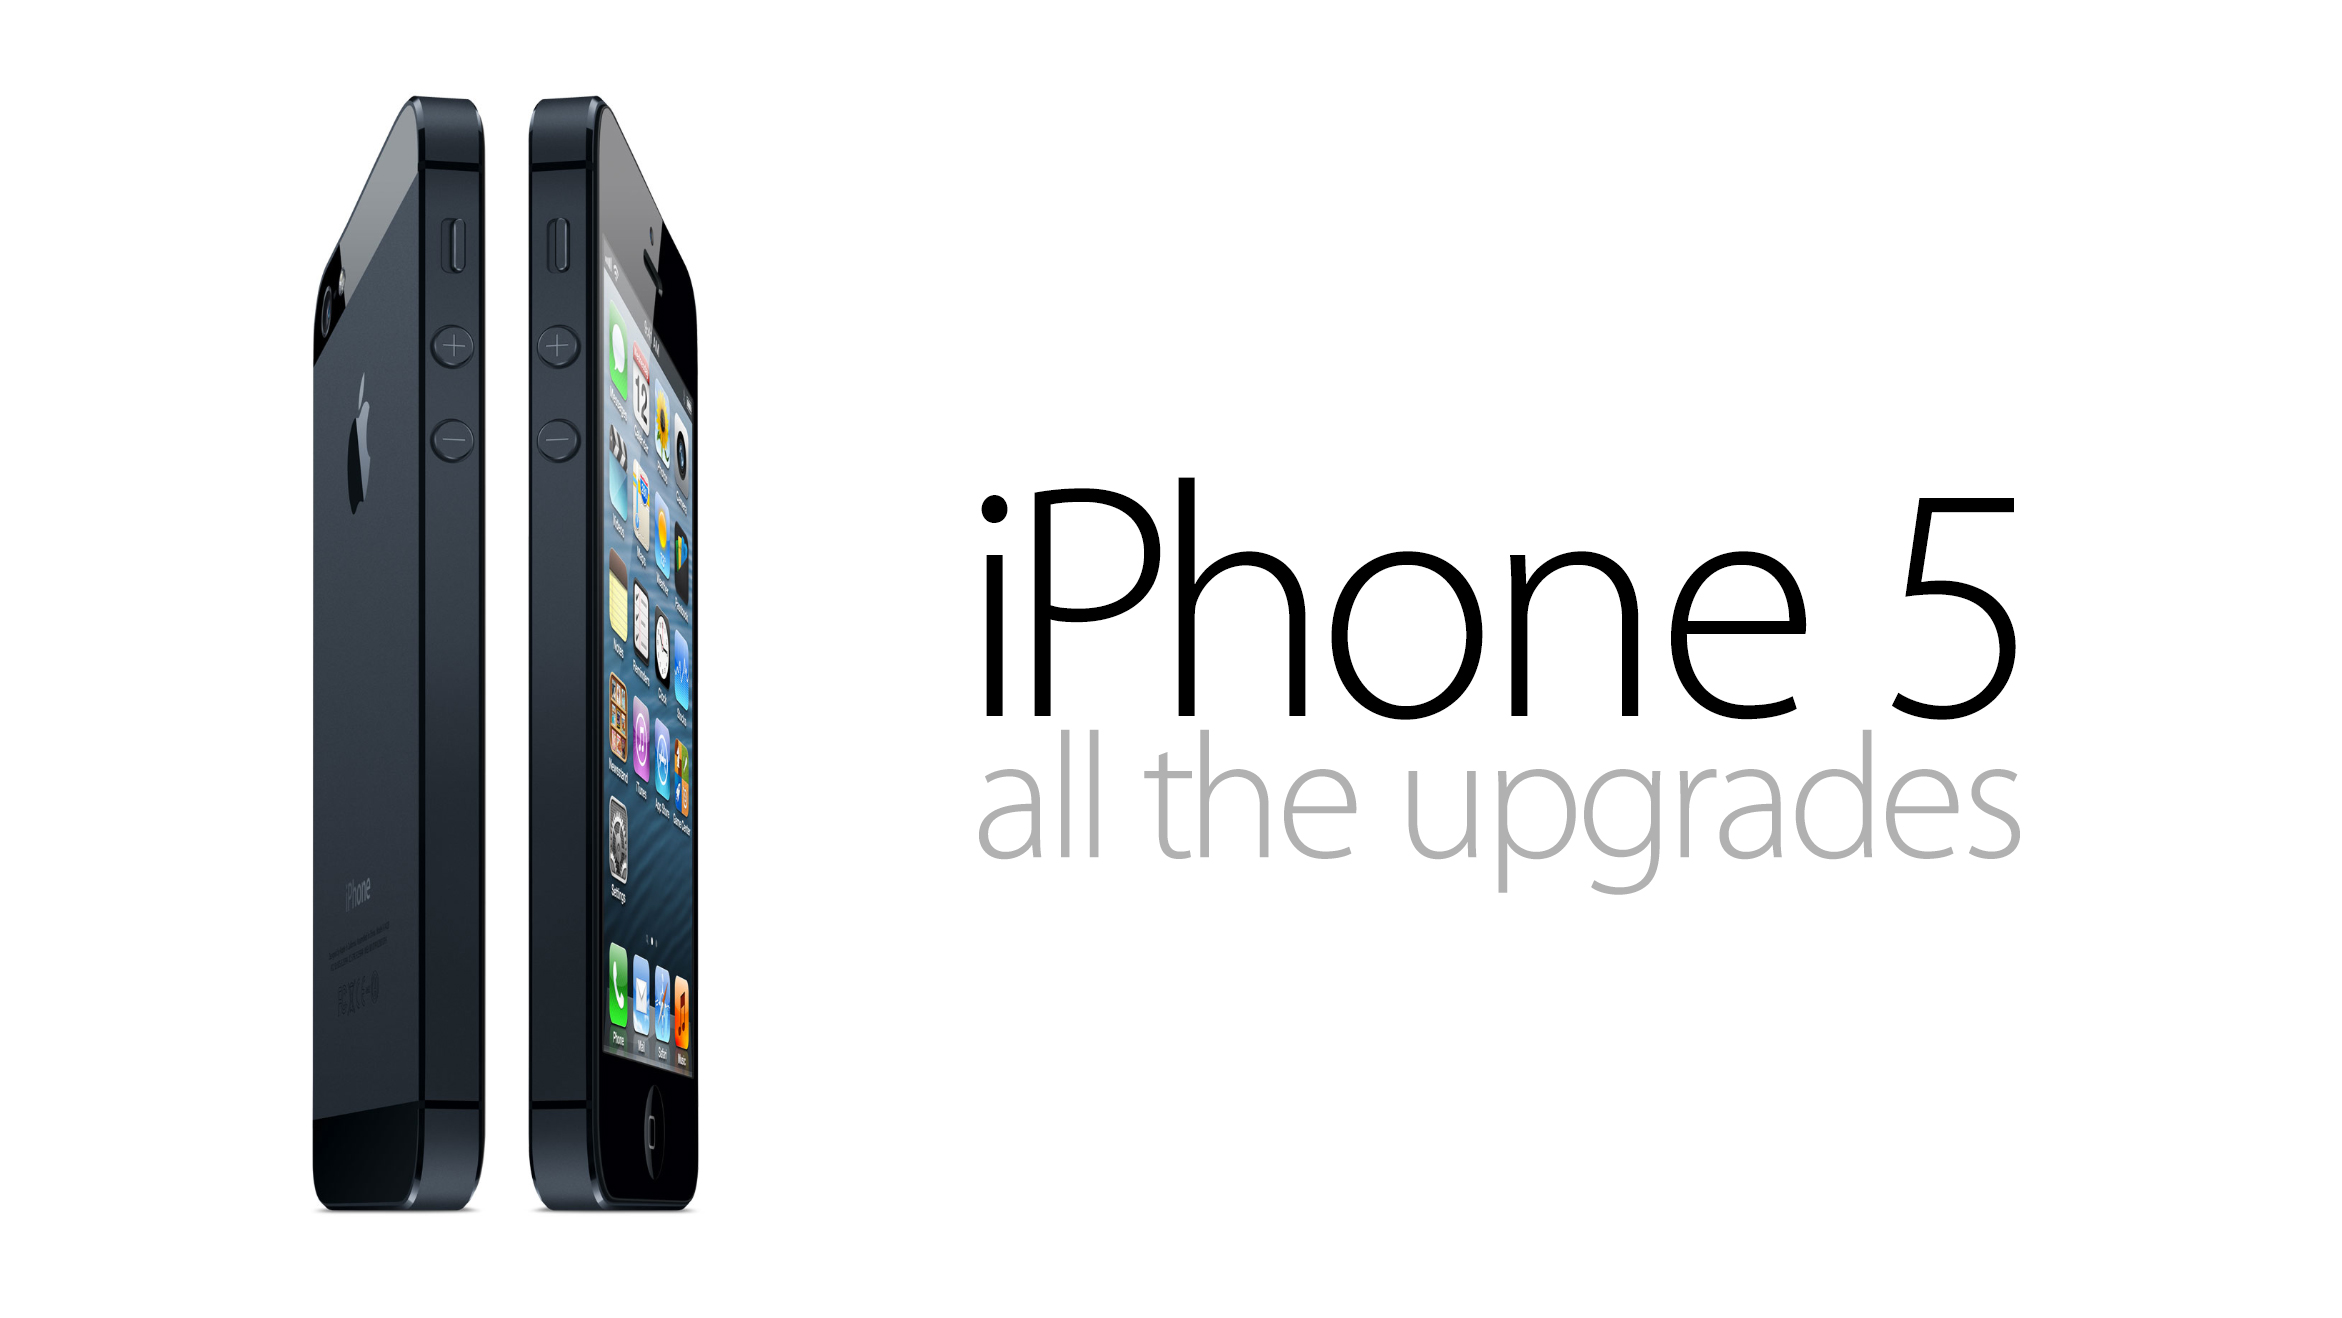 Презентация Apple iPhone 5